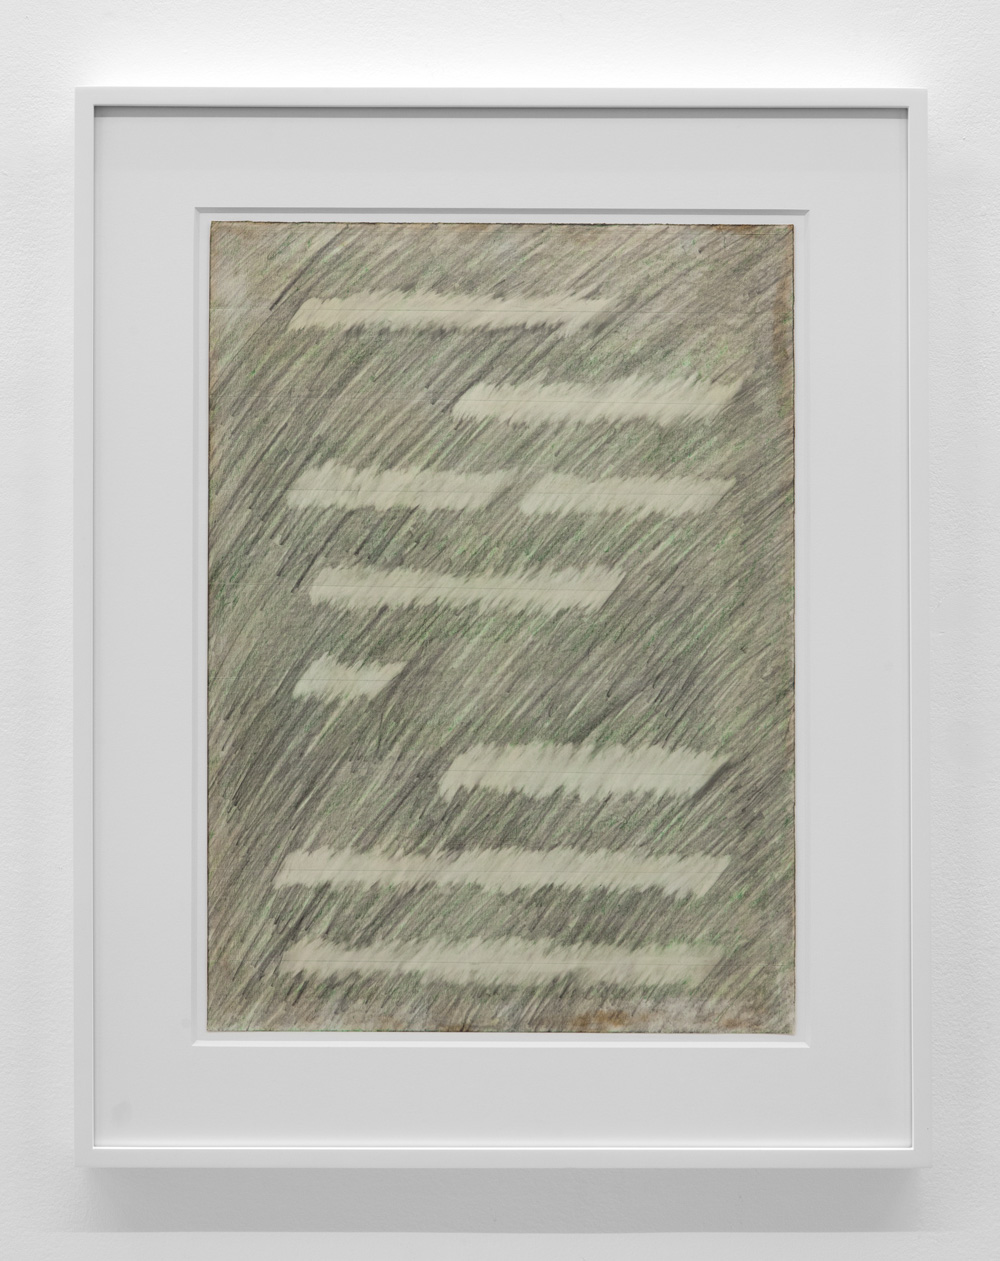 Progressive Placement , 1975 Pencil and pastel on paper 21 5/8 x 15 3/4 inches  54.9 x 40 cm